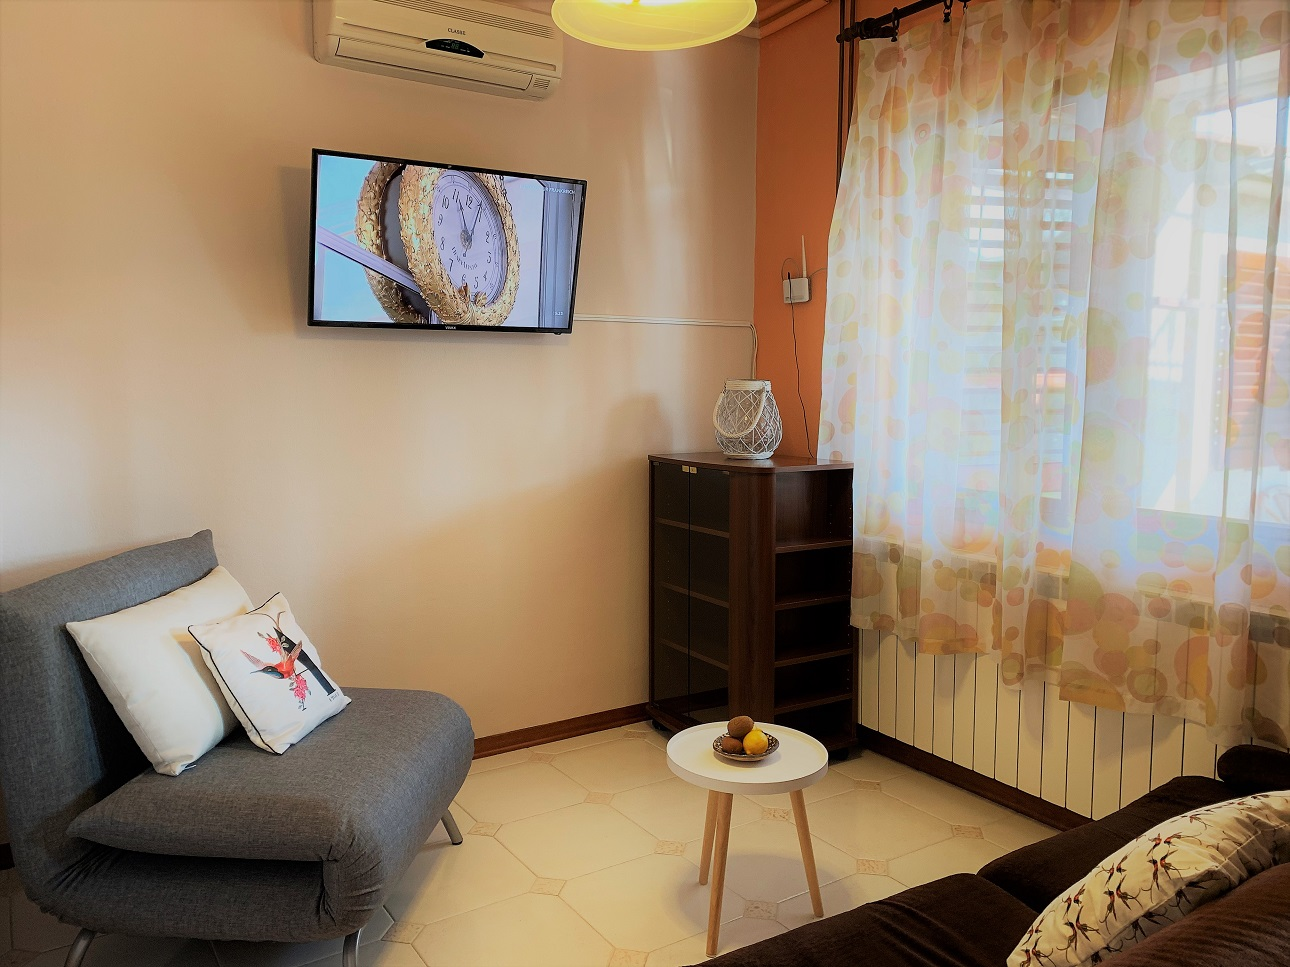 Rustico lounge living room with tv and aircon1290 pixela.jpg